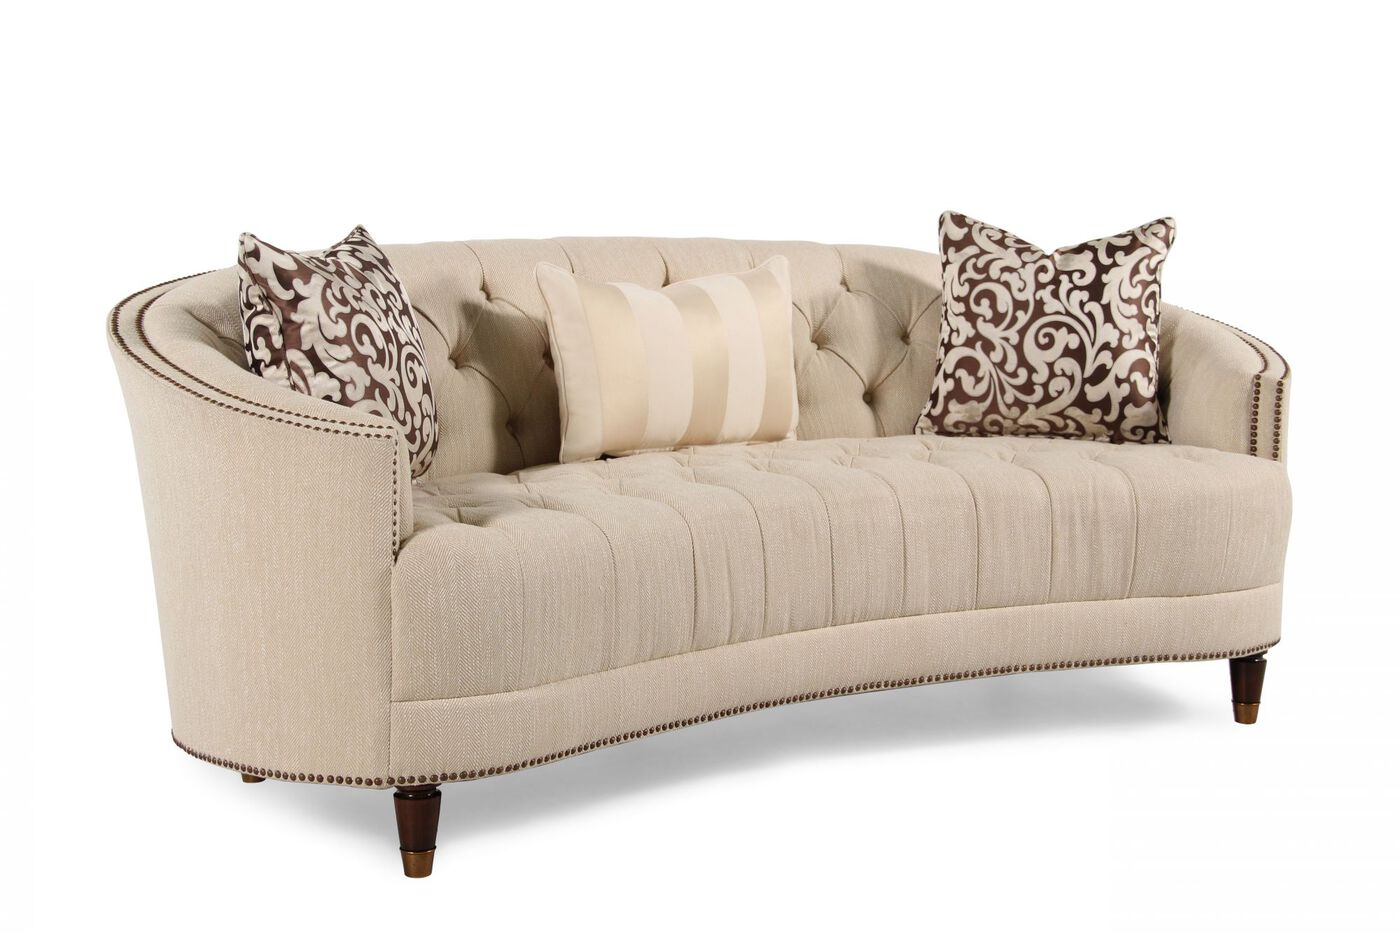 button tufted demilune sofa in cream mathis brothers furniture. Black Bedroom Furniture Sets. Home Design Ideas